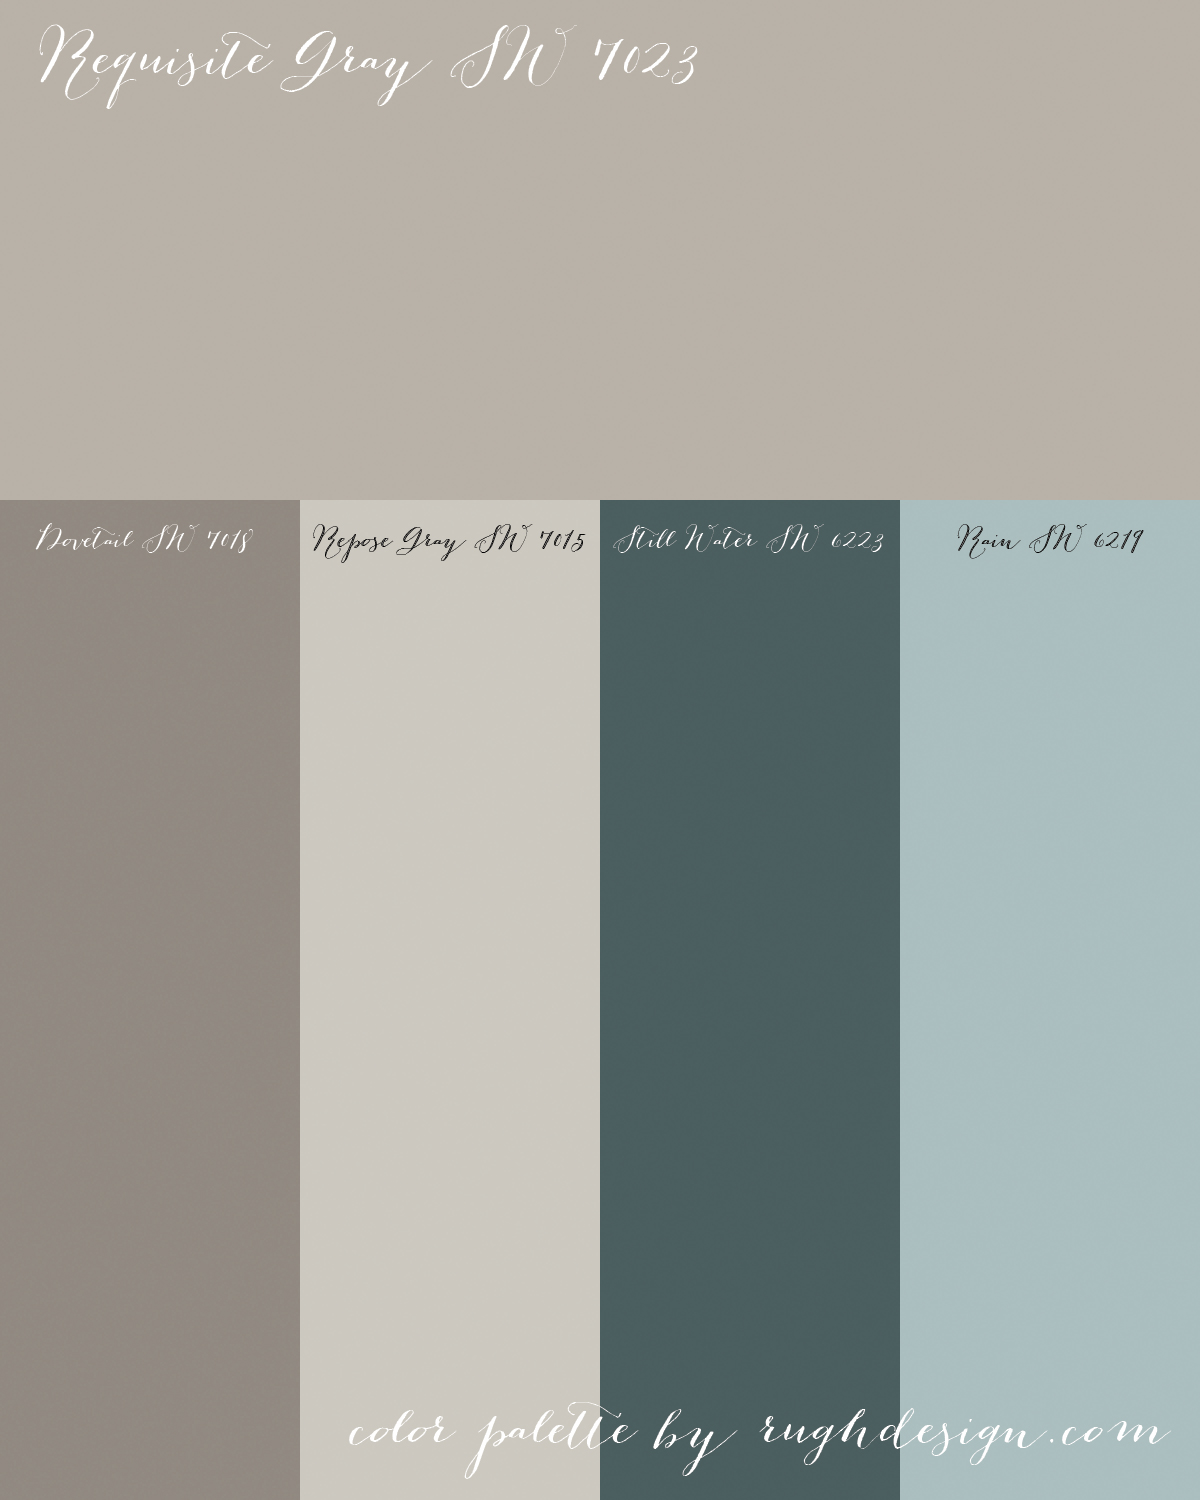 Requisite Gray Sw 7023 With A Complementary Color Scheme